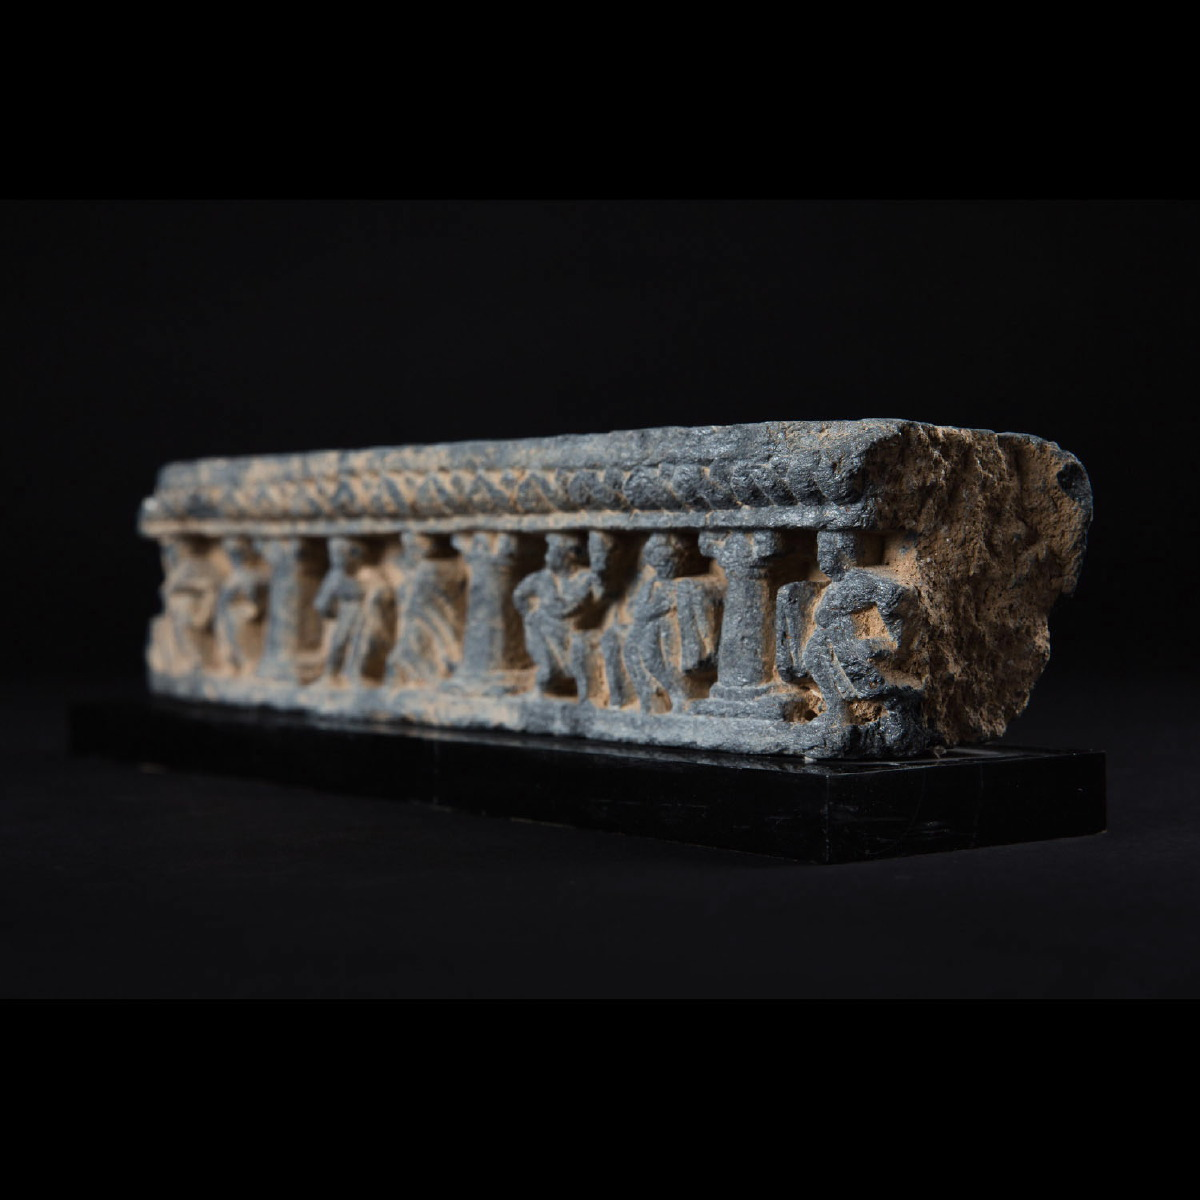 Photo of gandhara-greco-buddhist-art-schist-frieze-galerie-golconda